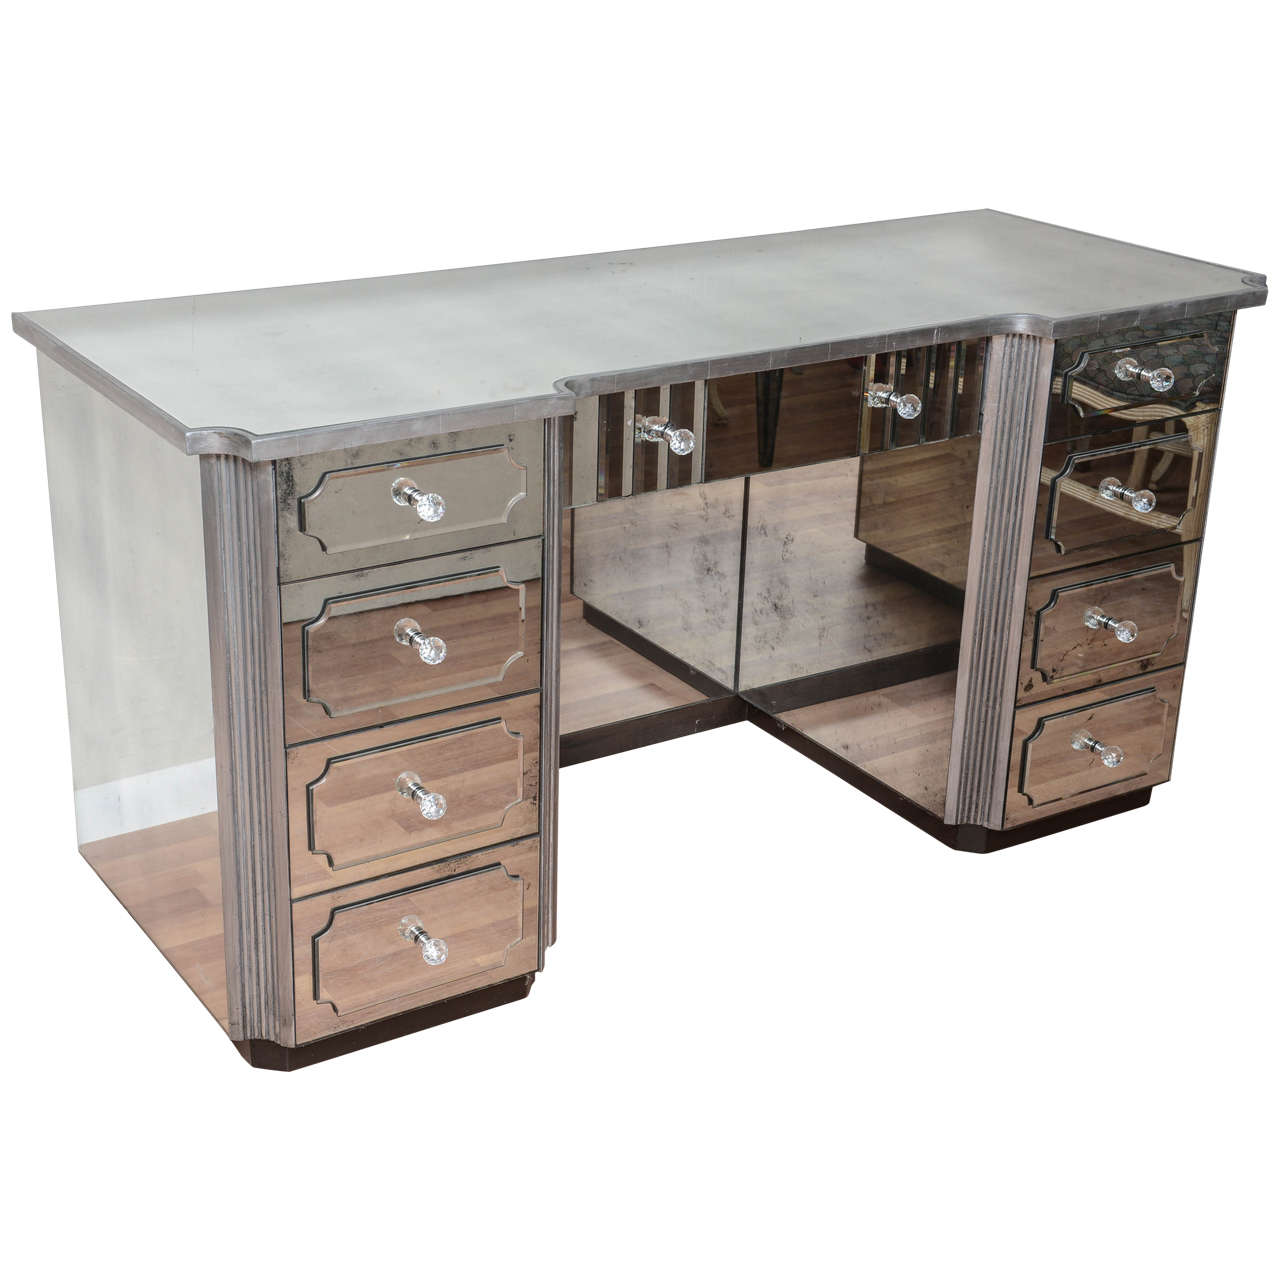 Superb mirrored dressing table or vanity with nine drawers for Mirror vanity